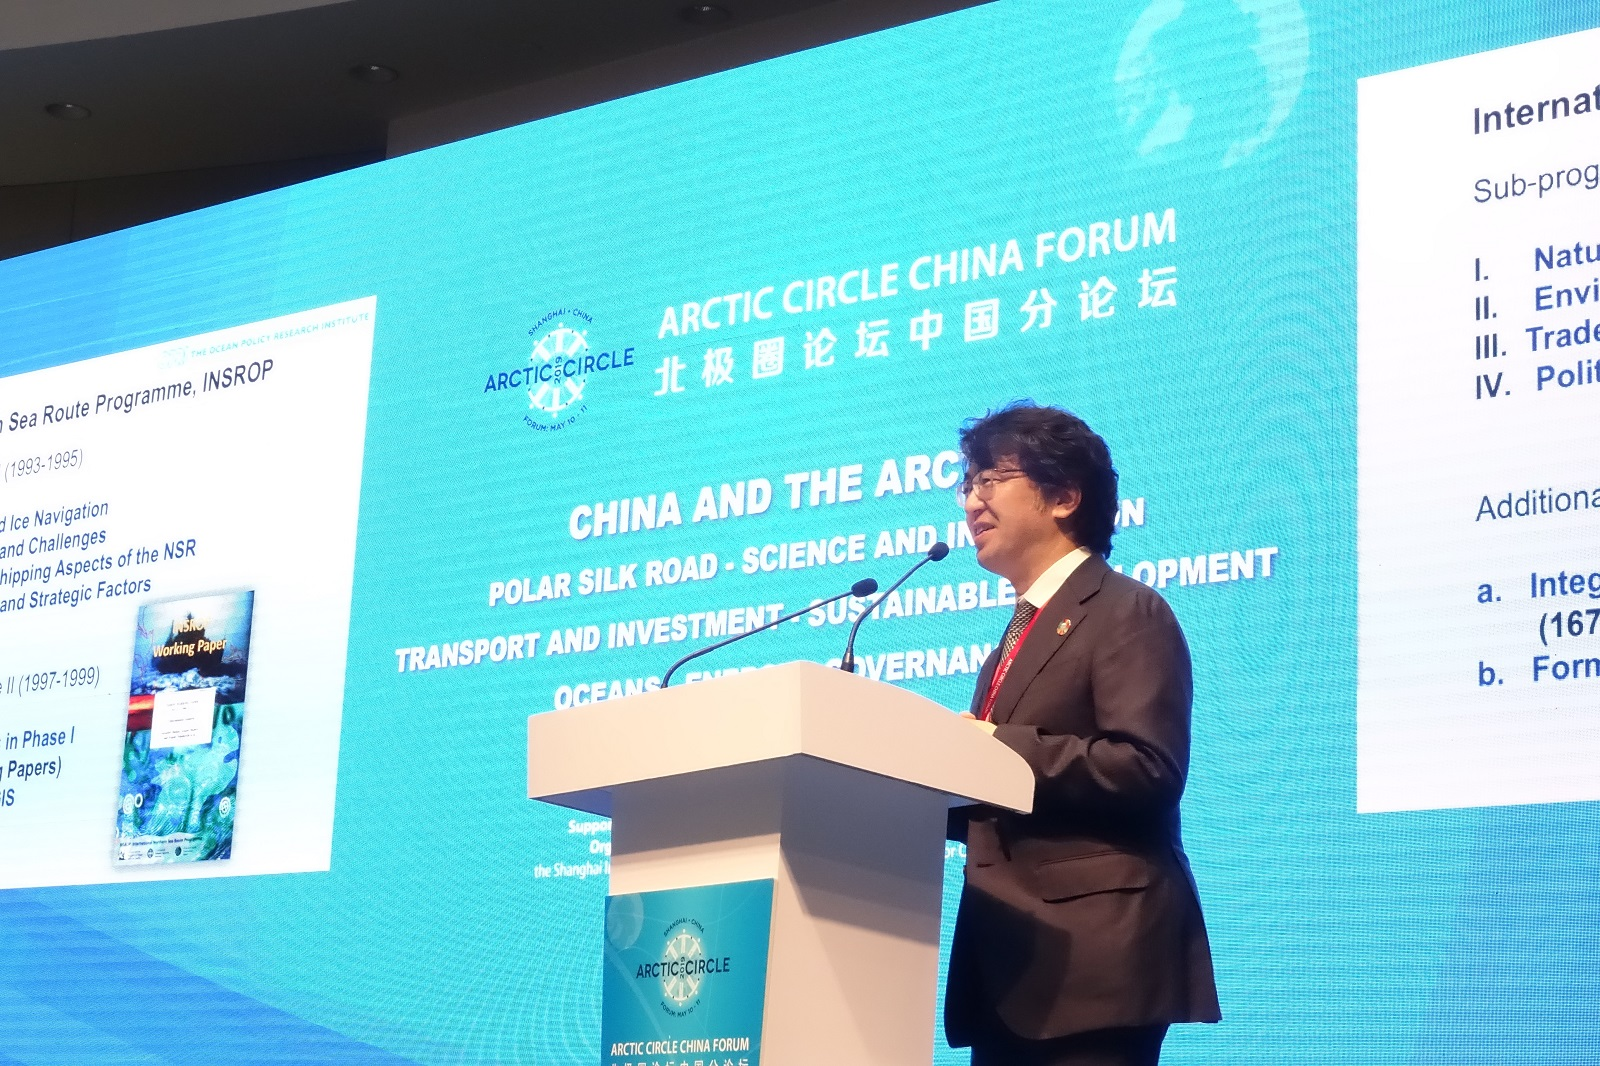 OPRI-SPF Participates in the Arctic Circle China Forum